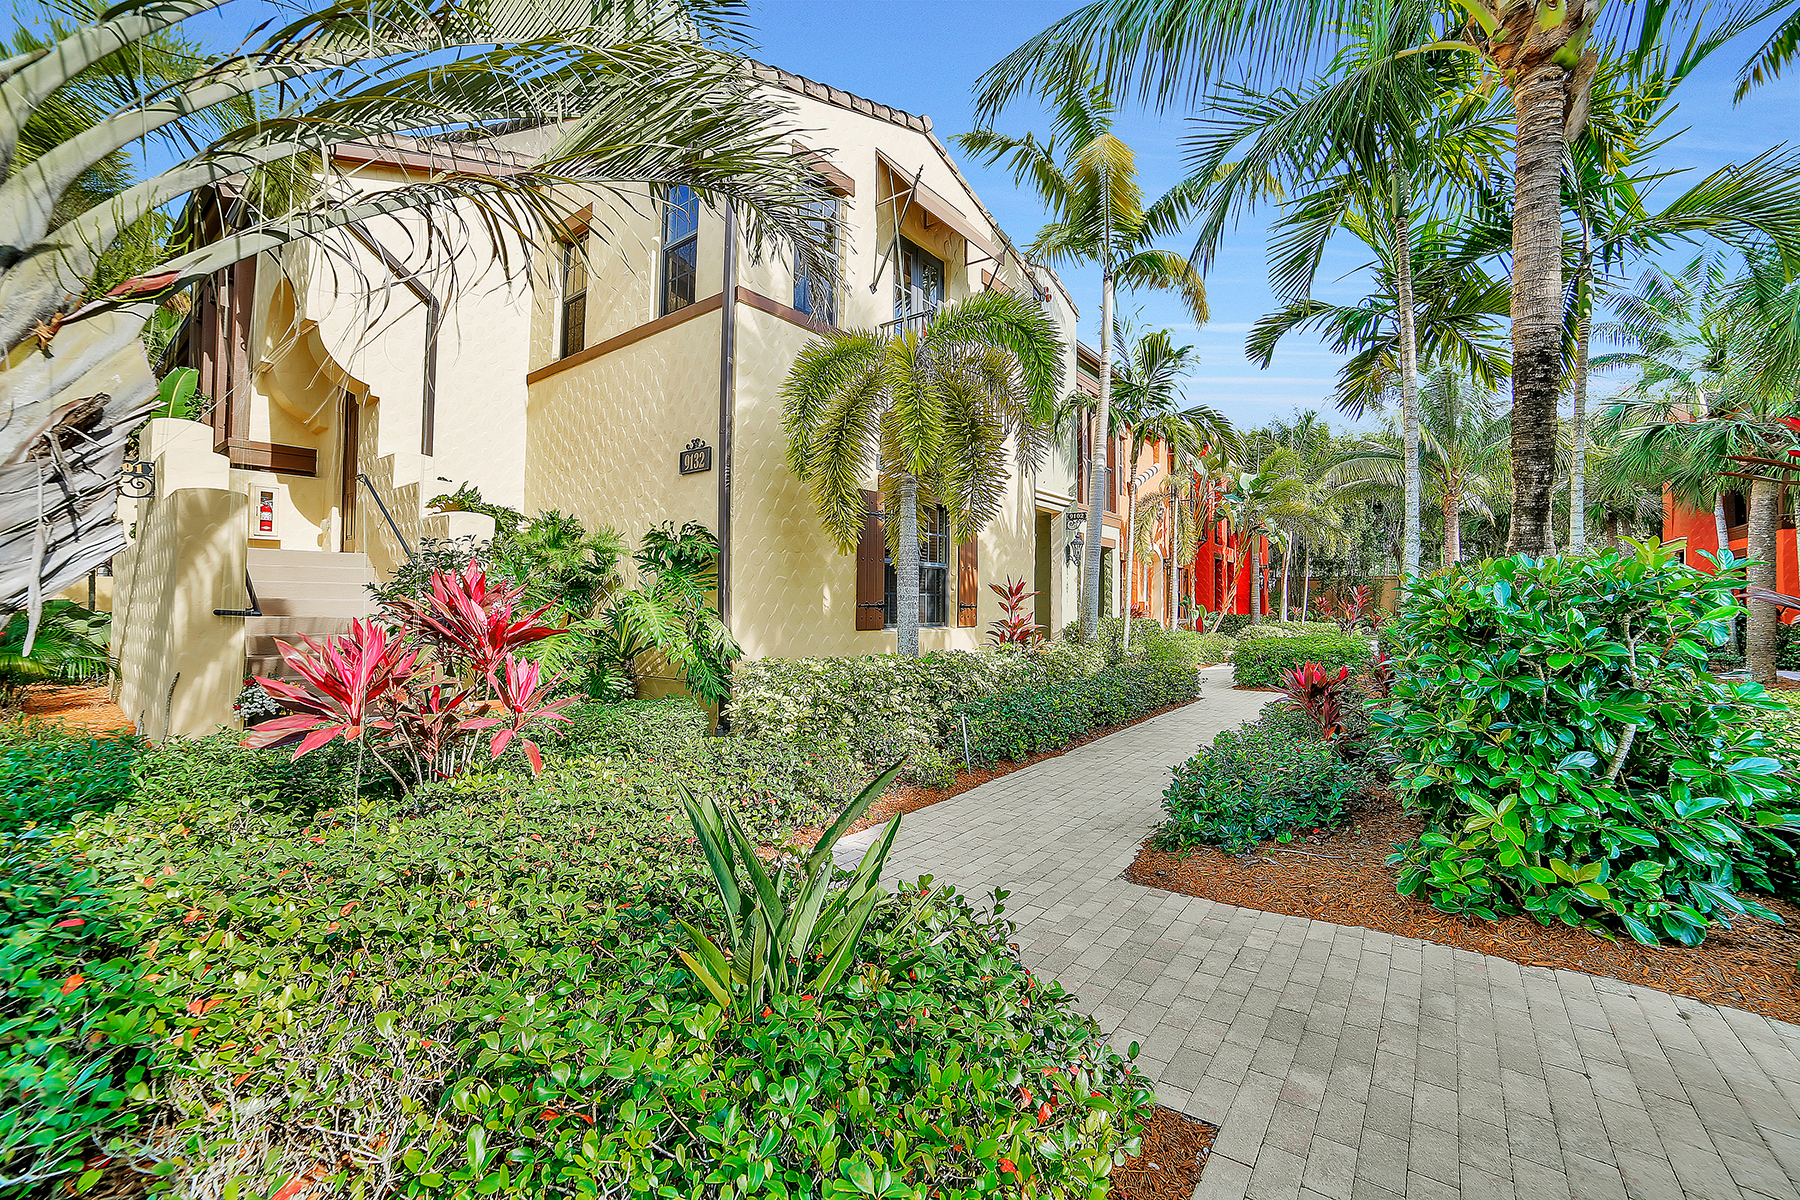 Townhouse for Sale at LELY RESORT - LELY 9132 Delano St 9101, Naples, Florida 34113 United States